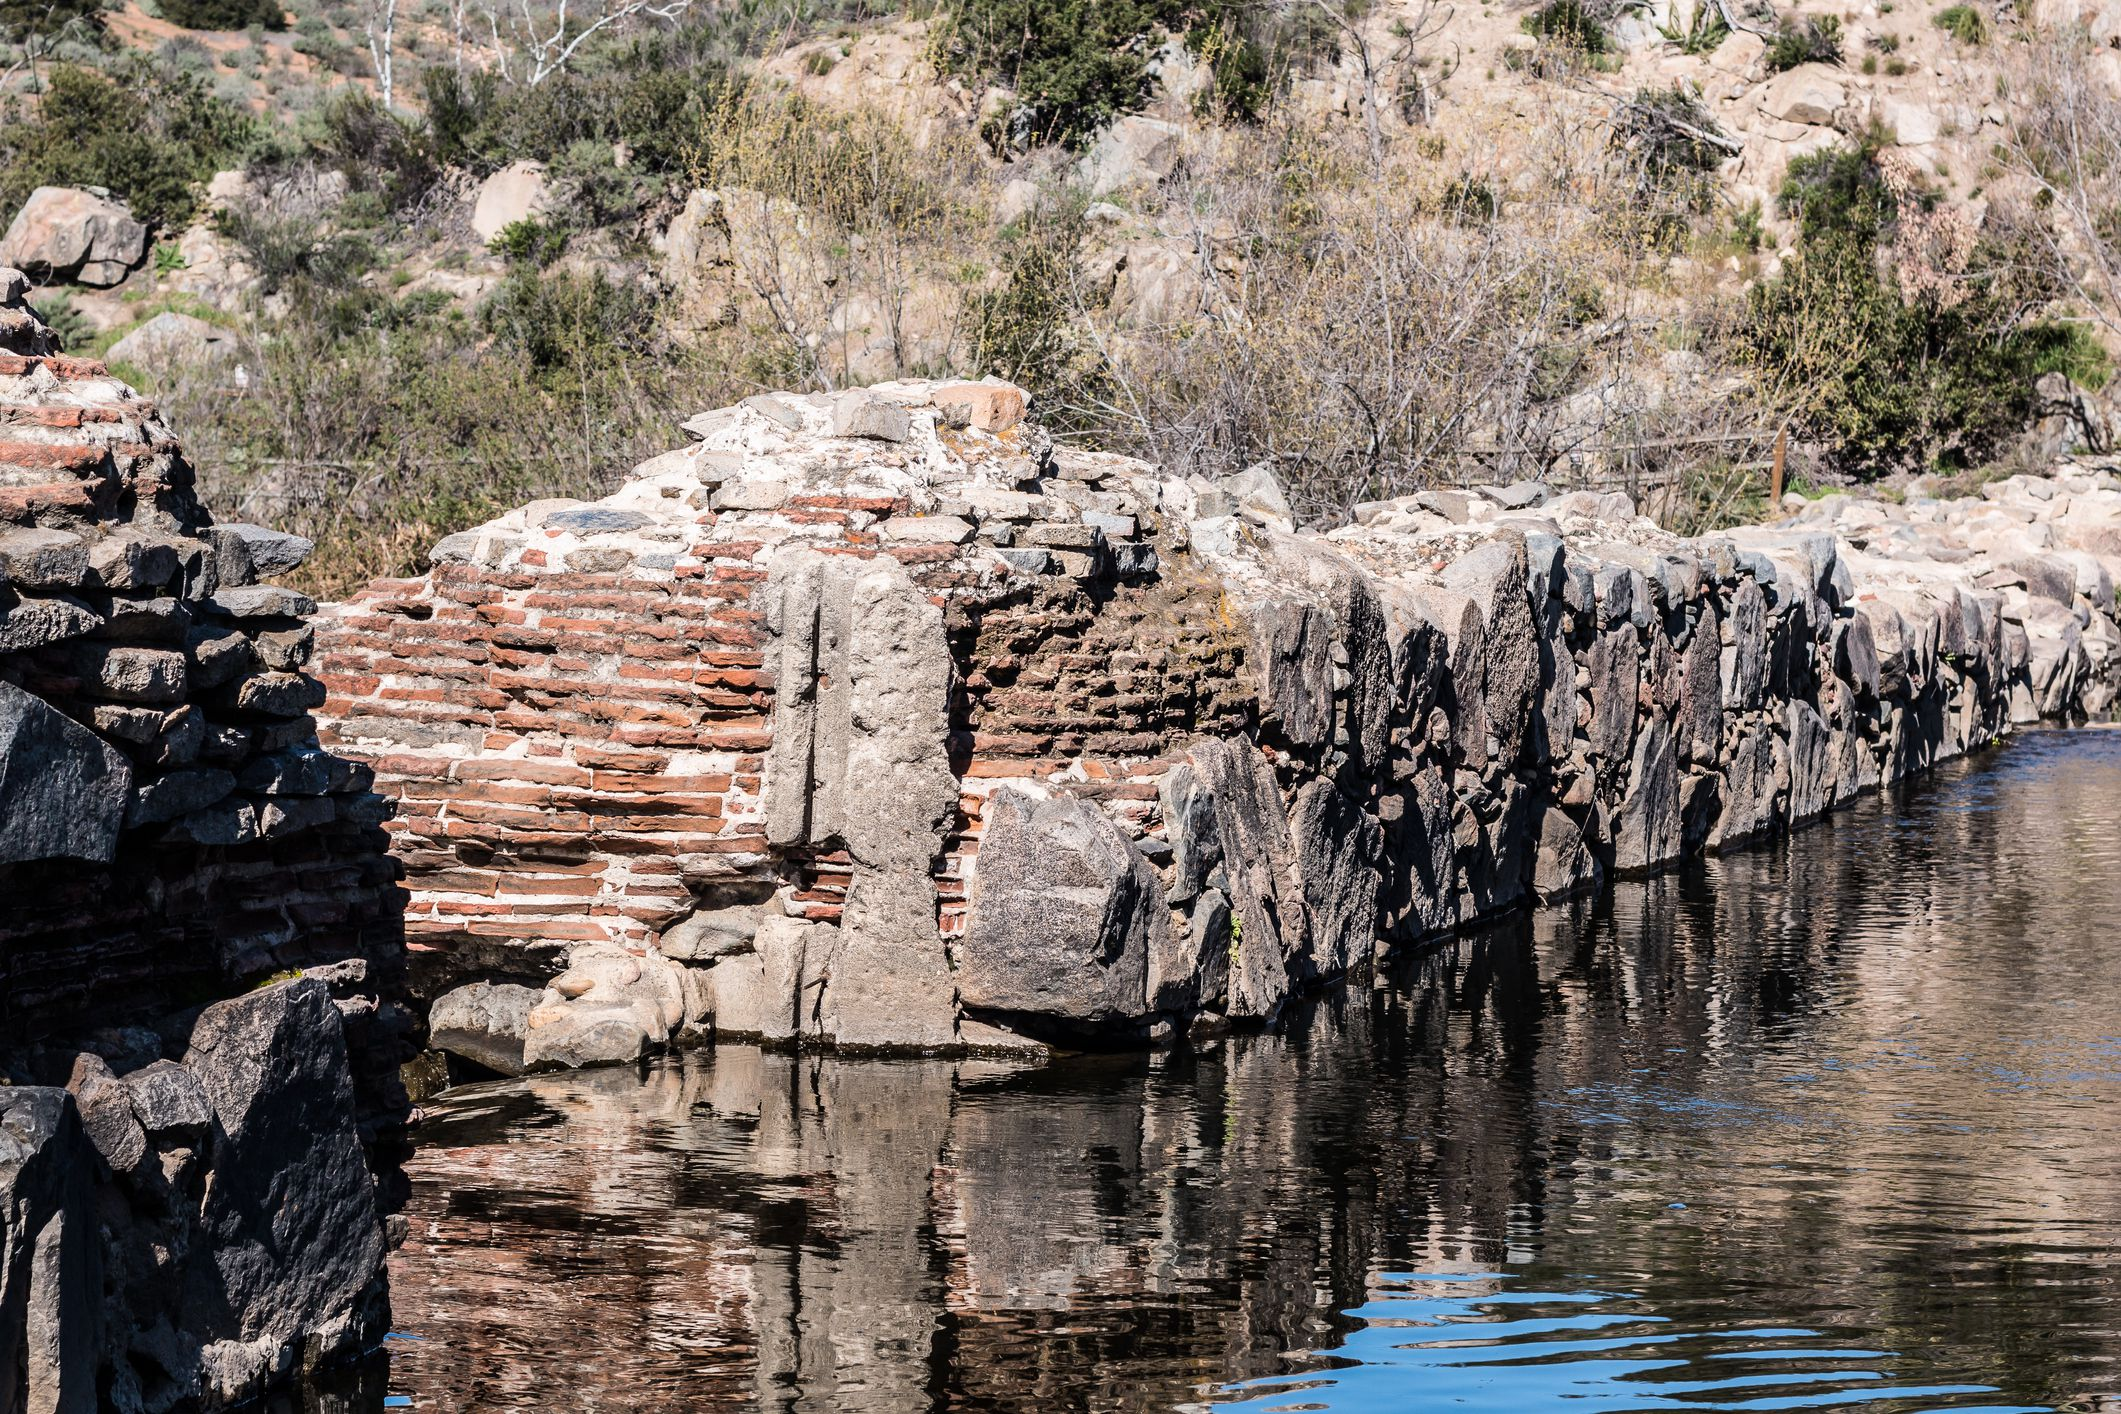 Close-up of the Old Mission Dam in San Diego